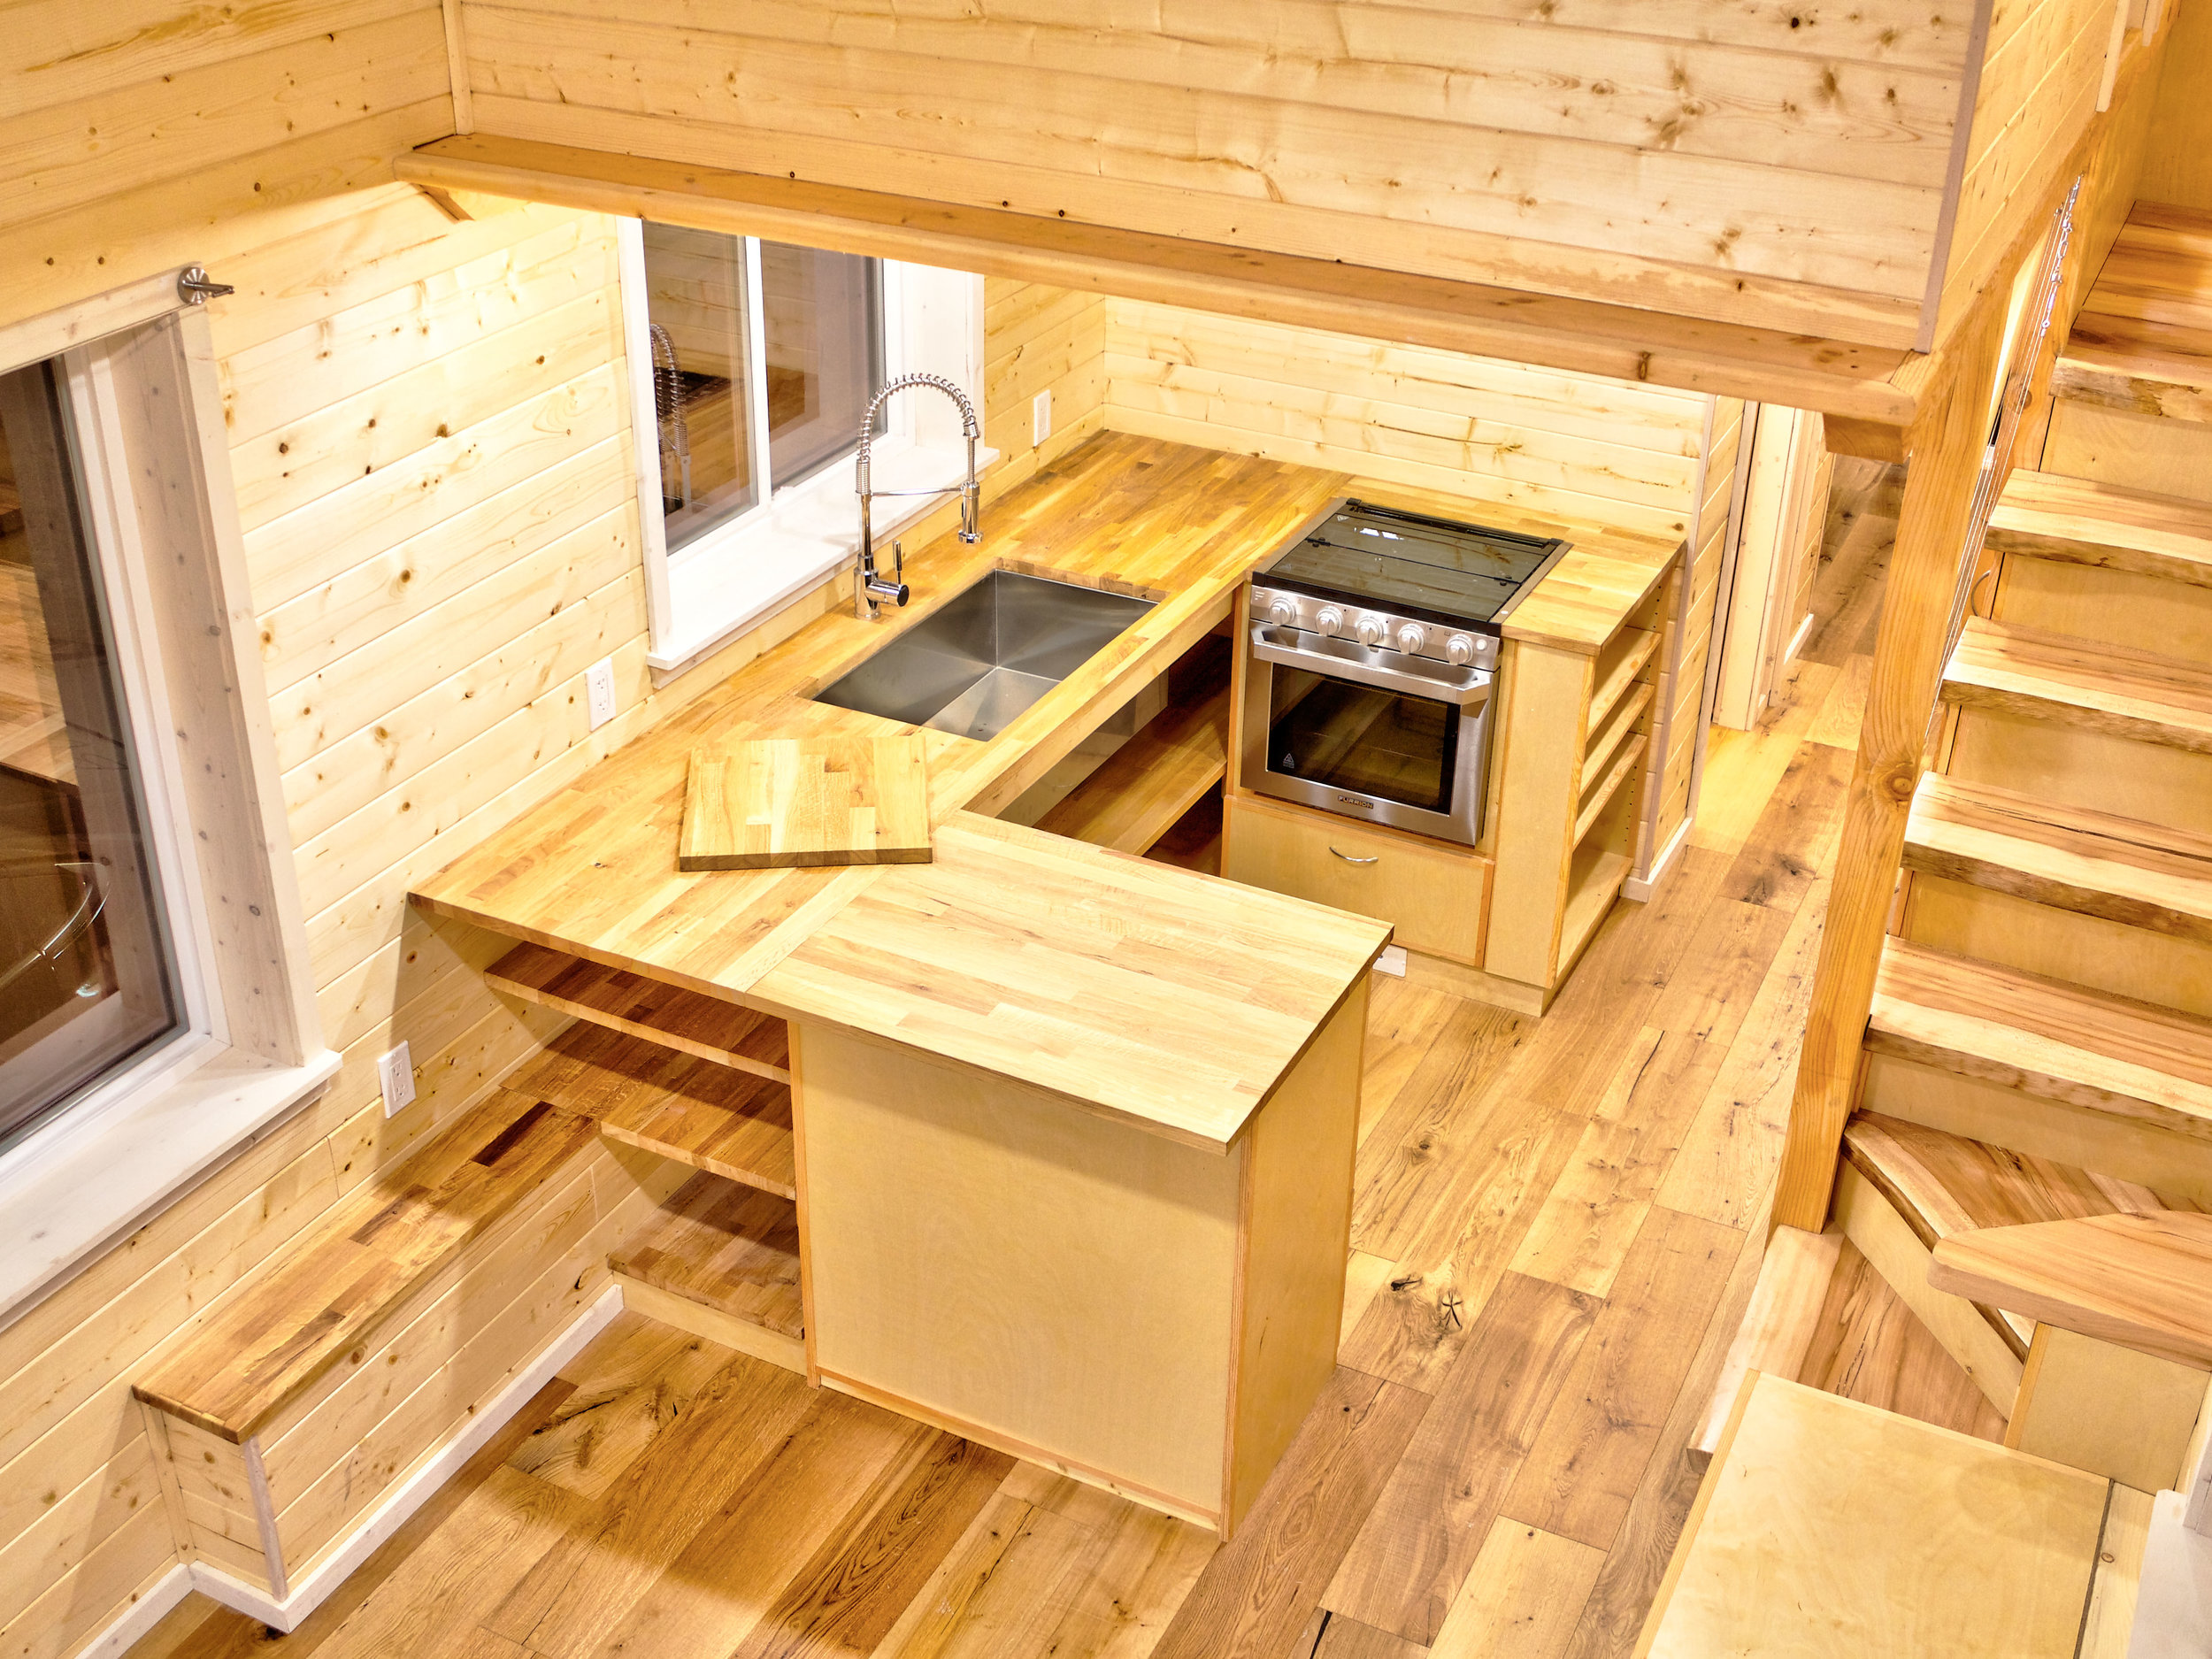 Kitchen above.jpg